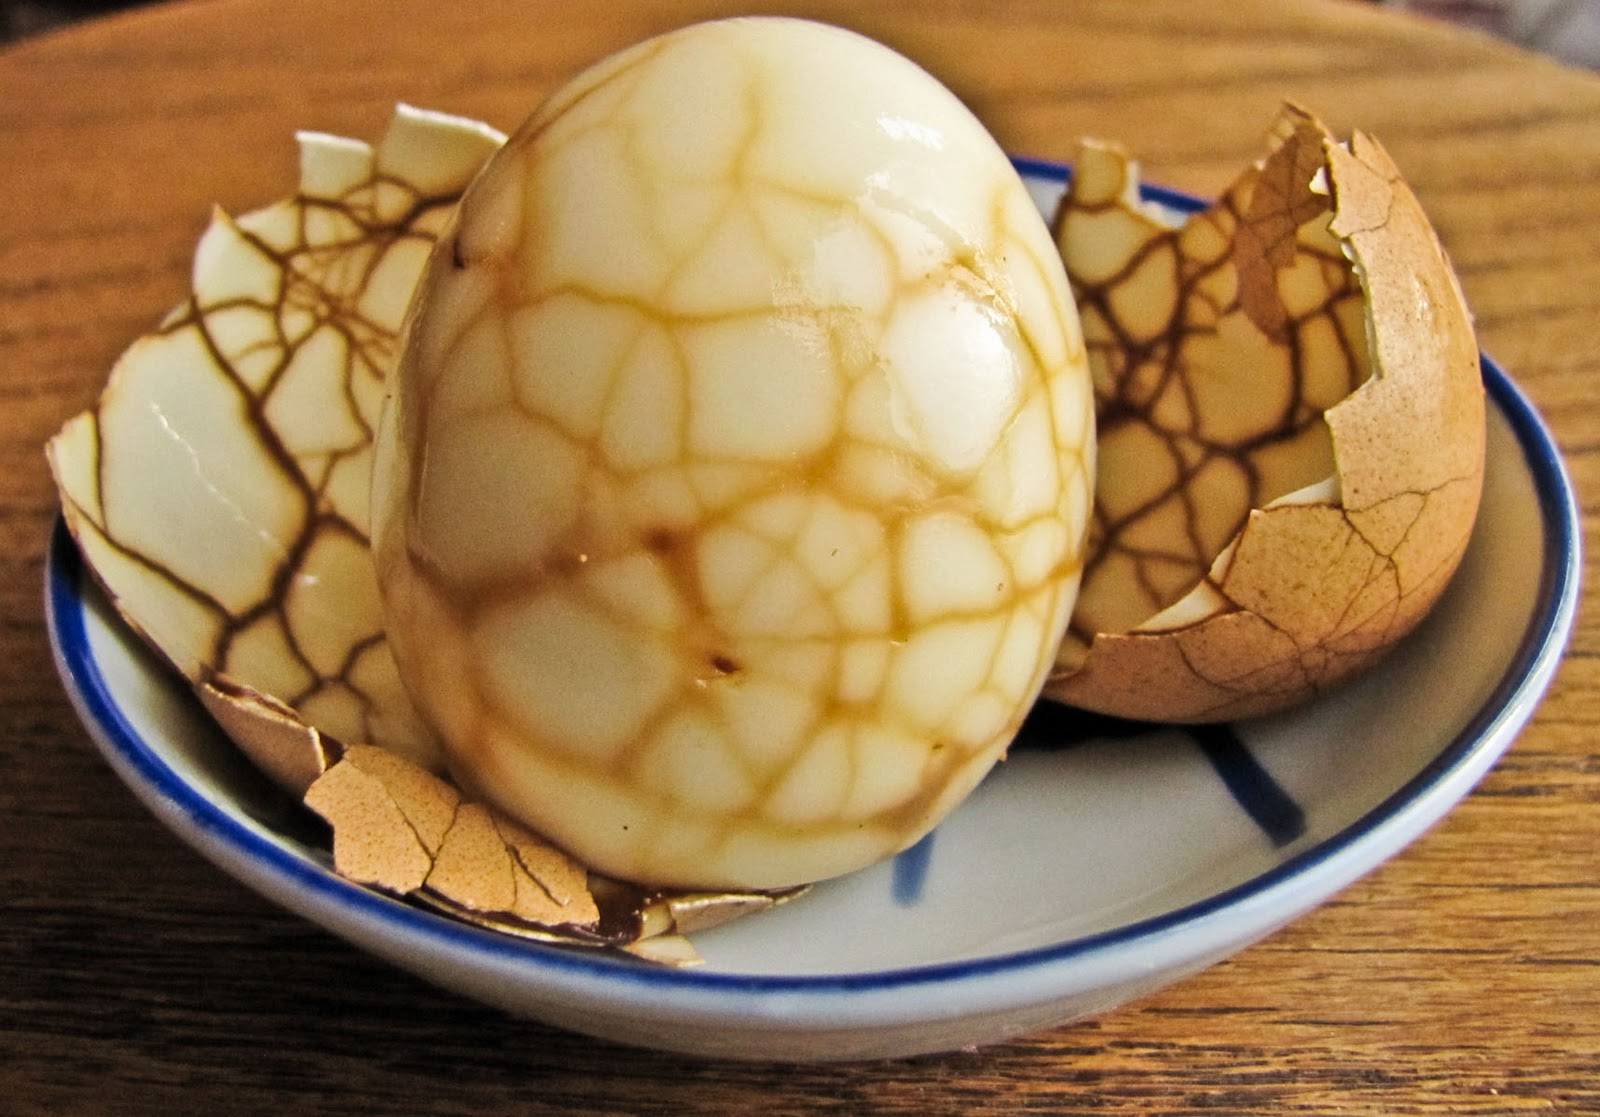 OnTheMove-In the Galley: Daring Cooks: Chinese Tea Eggs